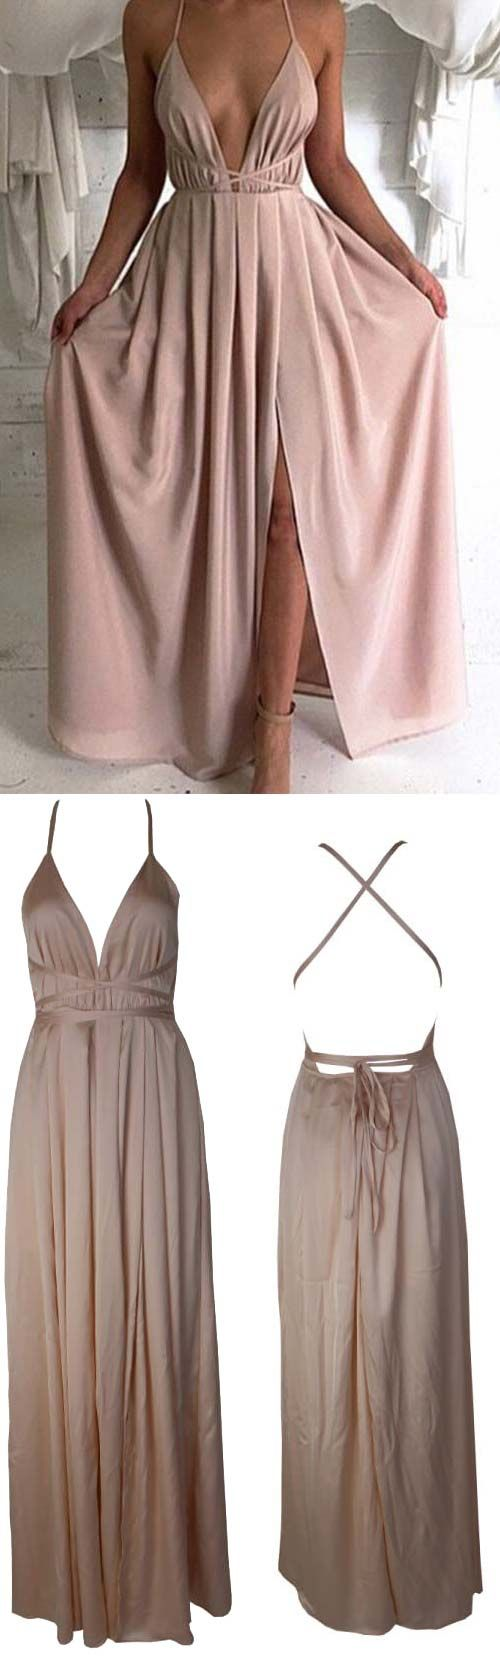 Sexy Low Cut Prom Party Dresses, Criss Cross Prom Dresses, Split Front Prom Dresses, Cheap Prom Dresses, Gigh Quality Prom Dresses